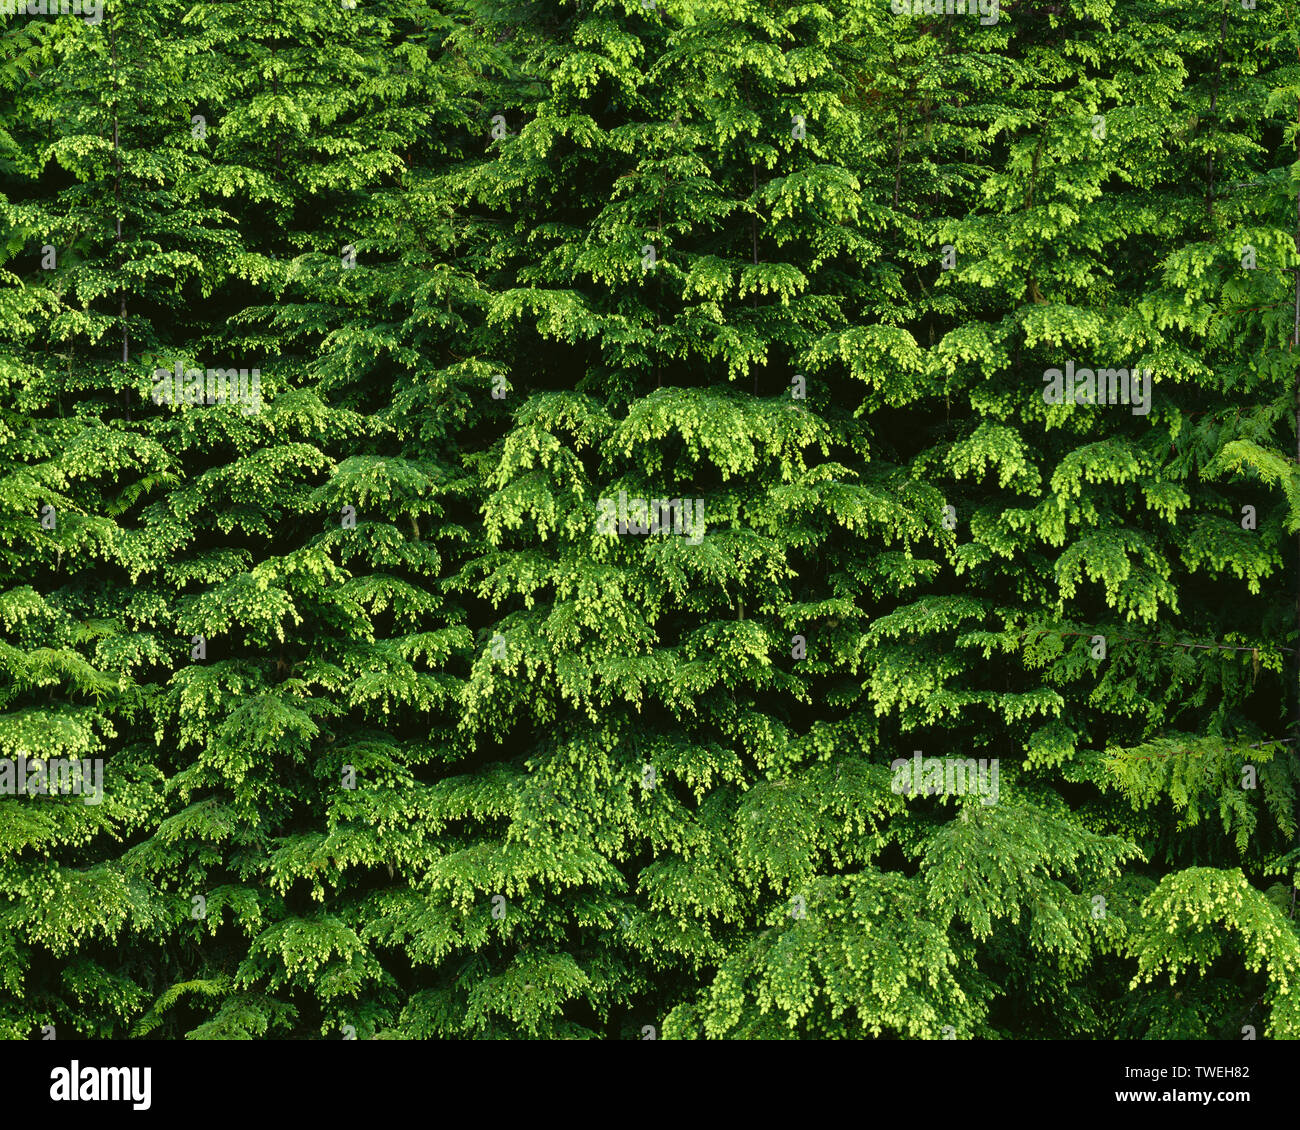 USA, Washington, Olympic National Park, Spring growth of western hemlock (Tsuga heterophylla); near Lake Creek. - Stock Image